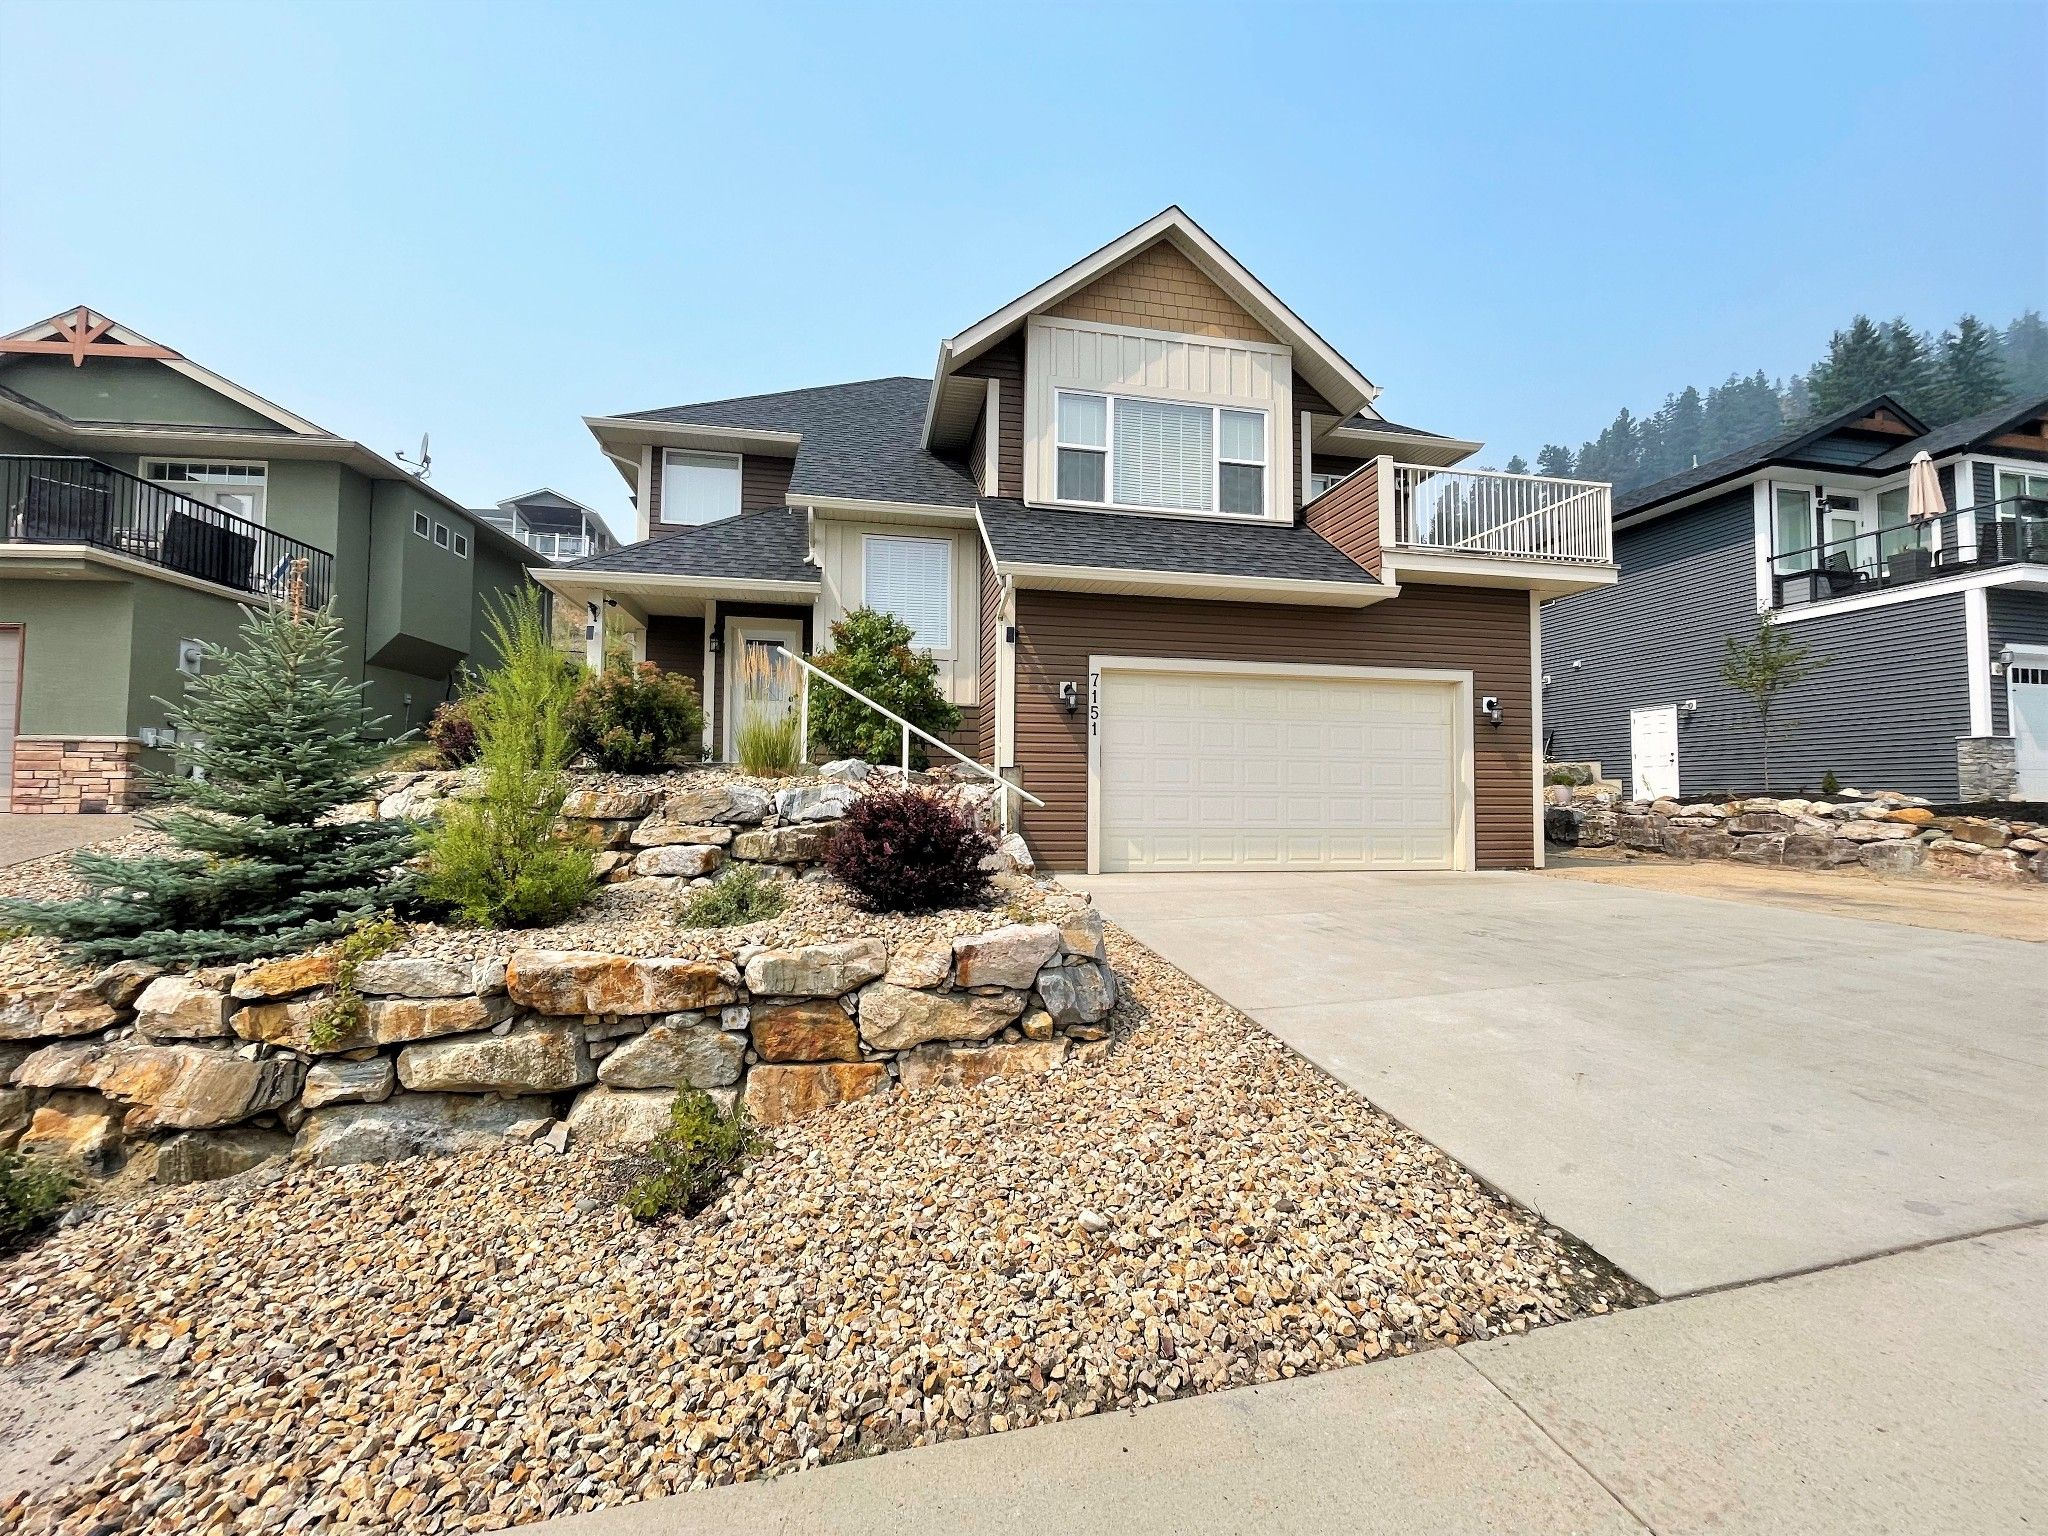 Main Photo: 7151 Tabor Drive in Vernon: Foothills House for sale (North Okanagan)  : MLS®# 10238241